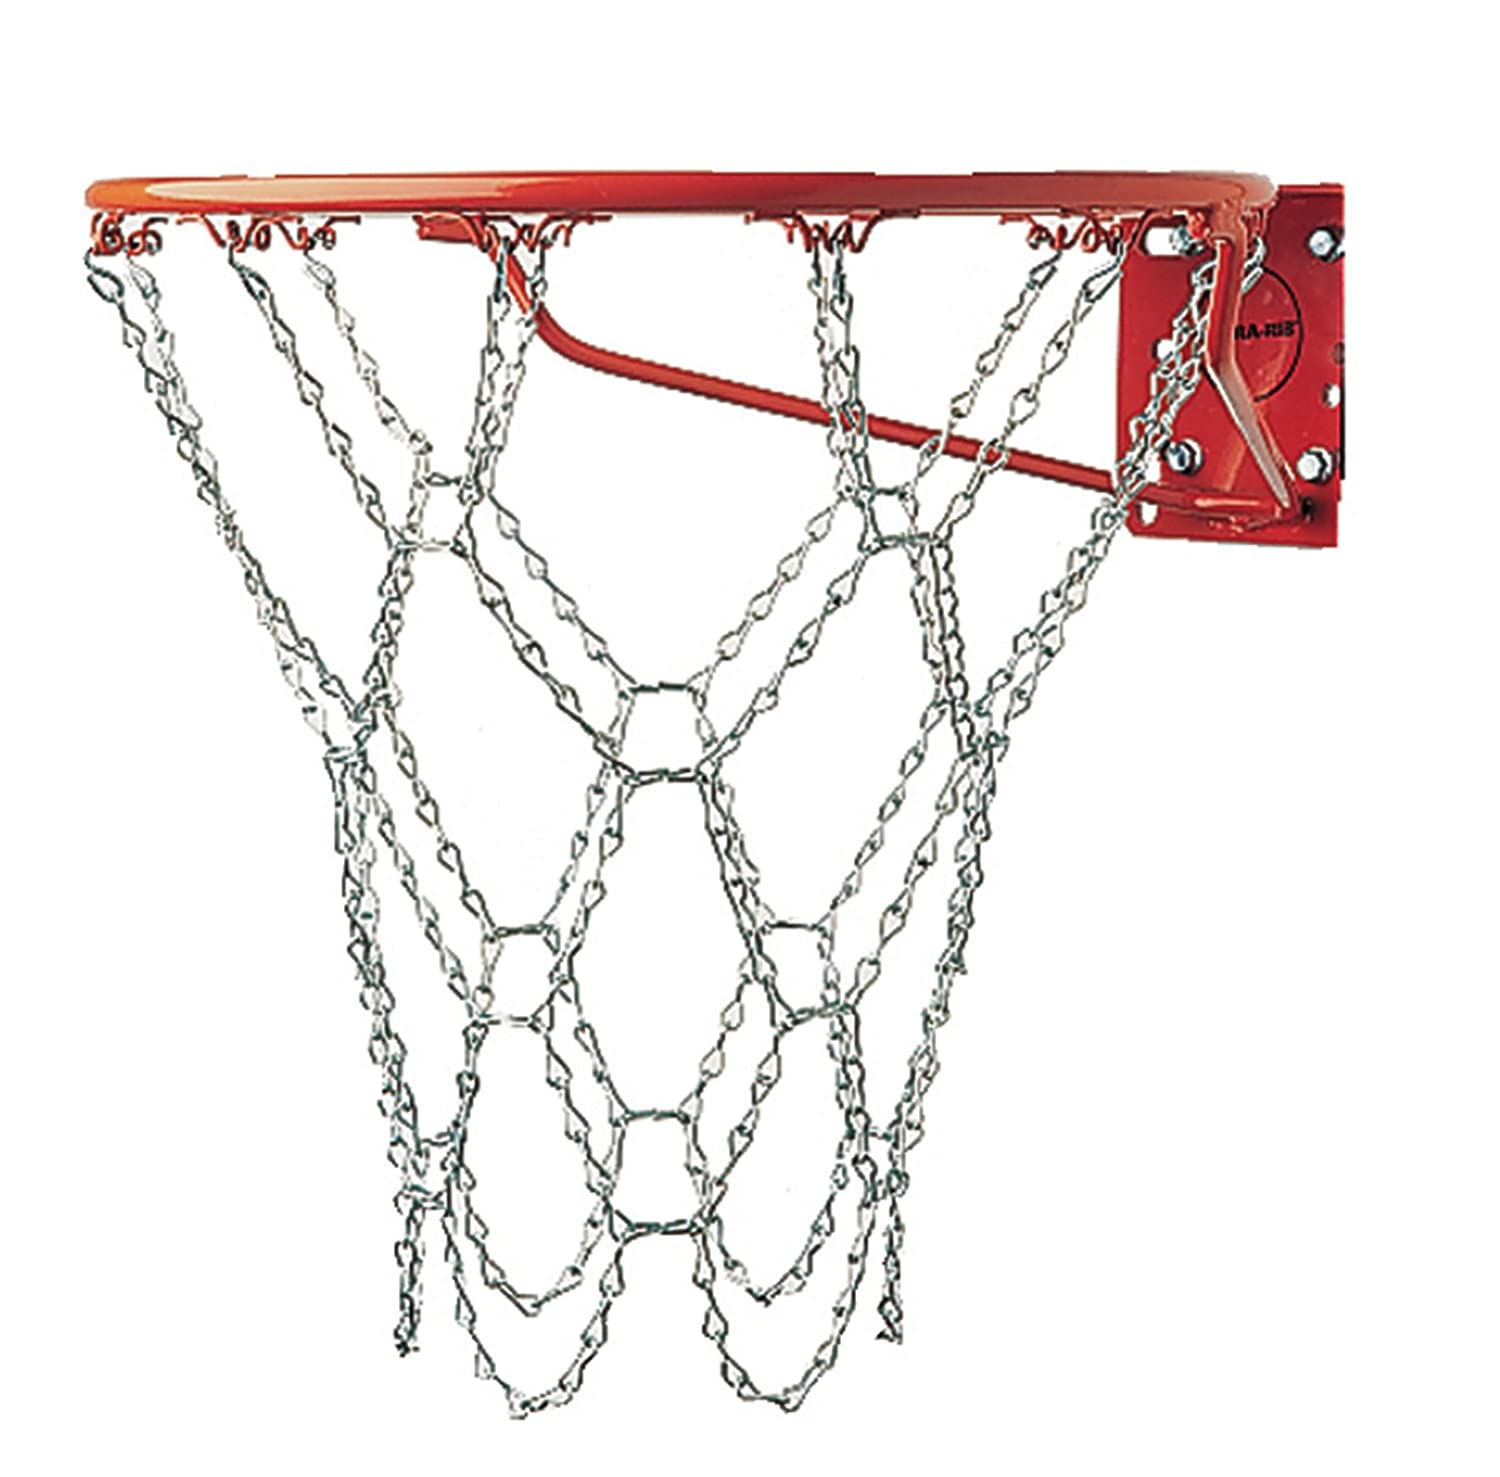 CHAMPION SPORTS Red de baloncesto de acero galvanizado 410